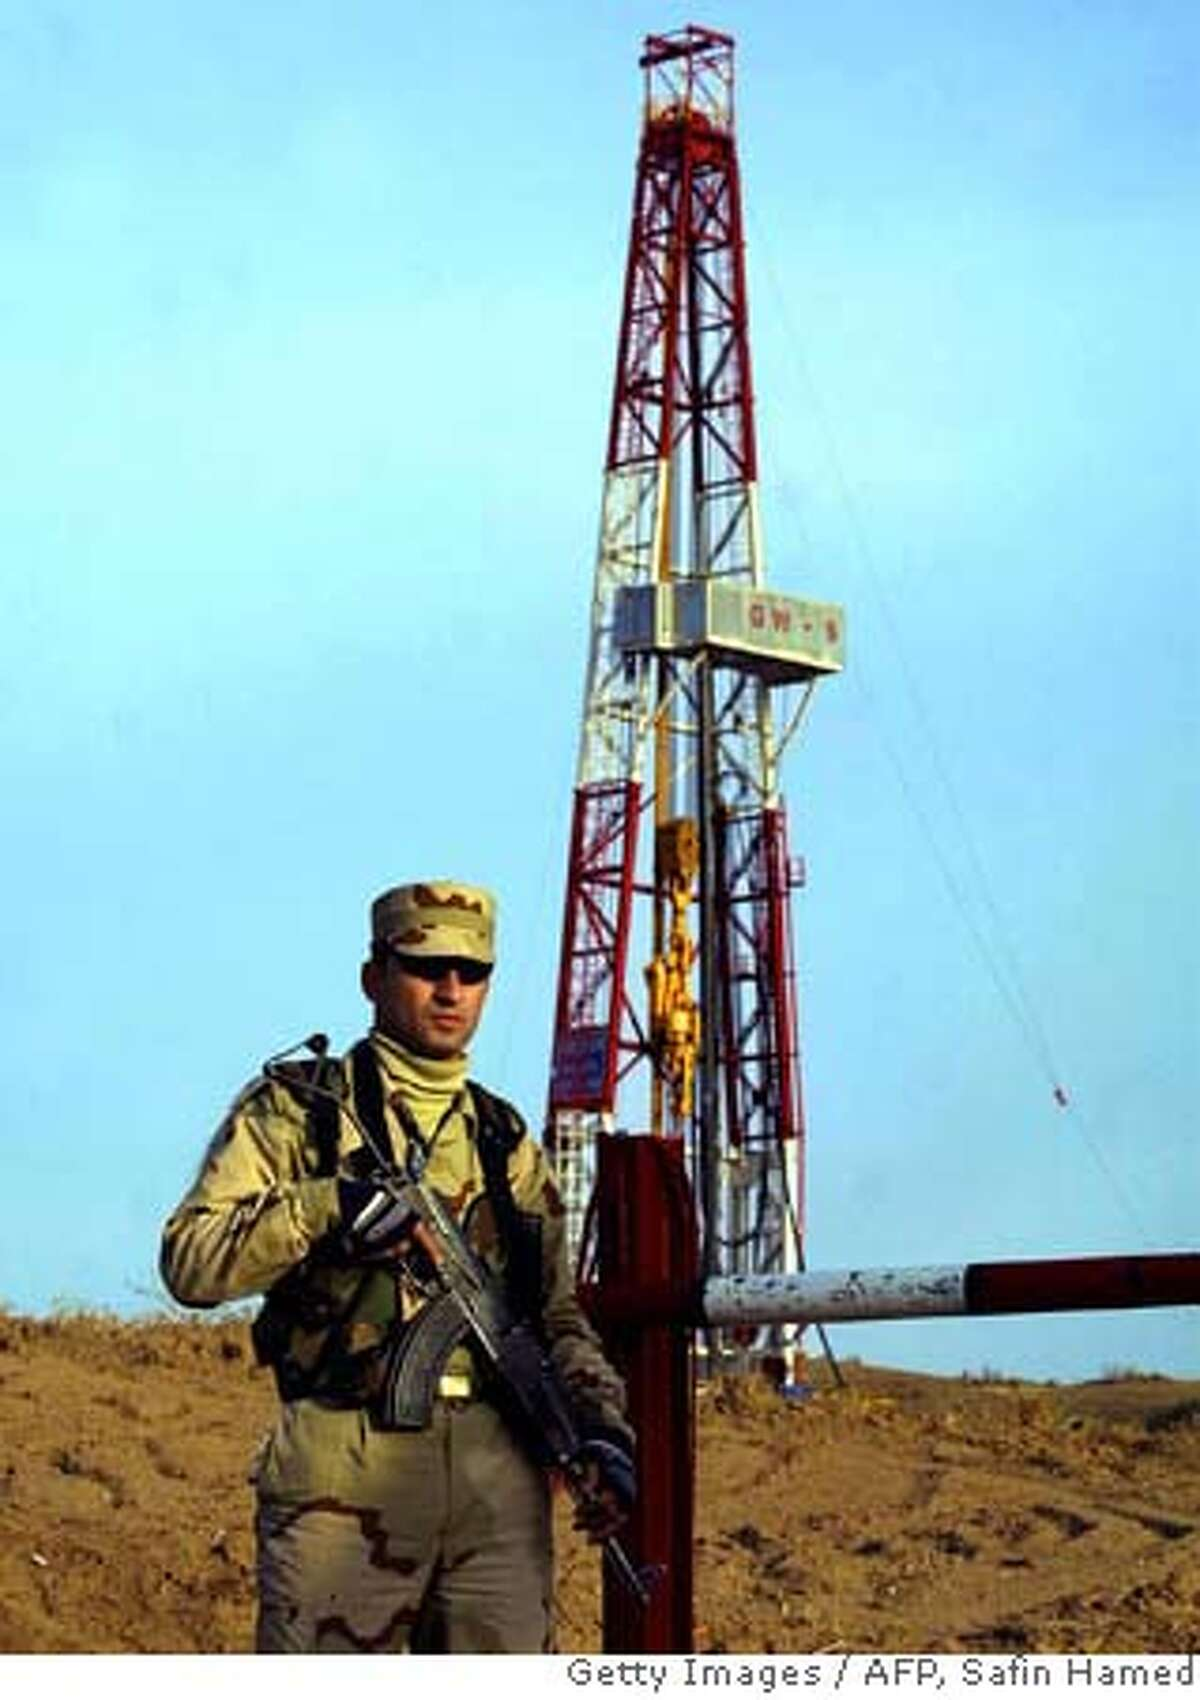 ###Live Caption:KAPROKE, Iraq: Chevron Corp. and other international oil companies are negotiating with the Iraq Ministry of Oil to squeeze more petroleum from the country's aging fields, according to published reports. Getting the oil is a dangerous proposition as evidenced by this Kurdish Peshmerga guarding a Norwegian company's drilling site in Kaproke in 2005. drilling site 29 November 2005 of a Norwegian oil company DNO who started oil prospecting in the village of Kaproke in northern Iraqi Kurdistan zone. Norway's media said DNO is the foreign company to start first drilling since the 2003 fall of Saddam Hussein's regime. AFP PHOTO/SAFIN HAMED (Photo credit should read SAFIN HAMED/AFP/Getty Images)###Caption History:KAPROKE, Iraq: A Kurdish Peshmerga guards a drilling site 29 November 2005 of a Norwegian oil company DNO who started oil prospecting in the village of Kaproke in northern Iraqi Kurdistan zone. Norway's media said DNO is the foreign company to start first drilling since the 2003 fall of Saddam Hussein's regime. AFP PHOTO/SAFIN HAMED (Photo credit should read SAFIN HAMED/AFP/Getty Images)###Notes:A Kurdish Peshmerga guards a drilling si###Special Instructions:DV